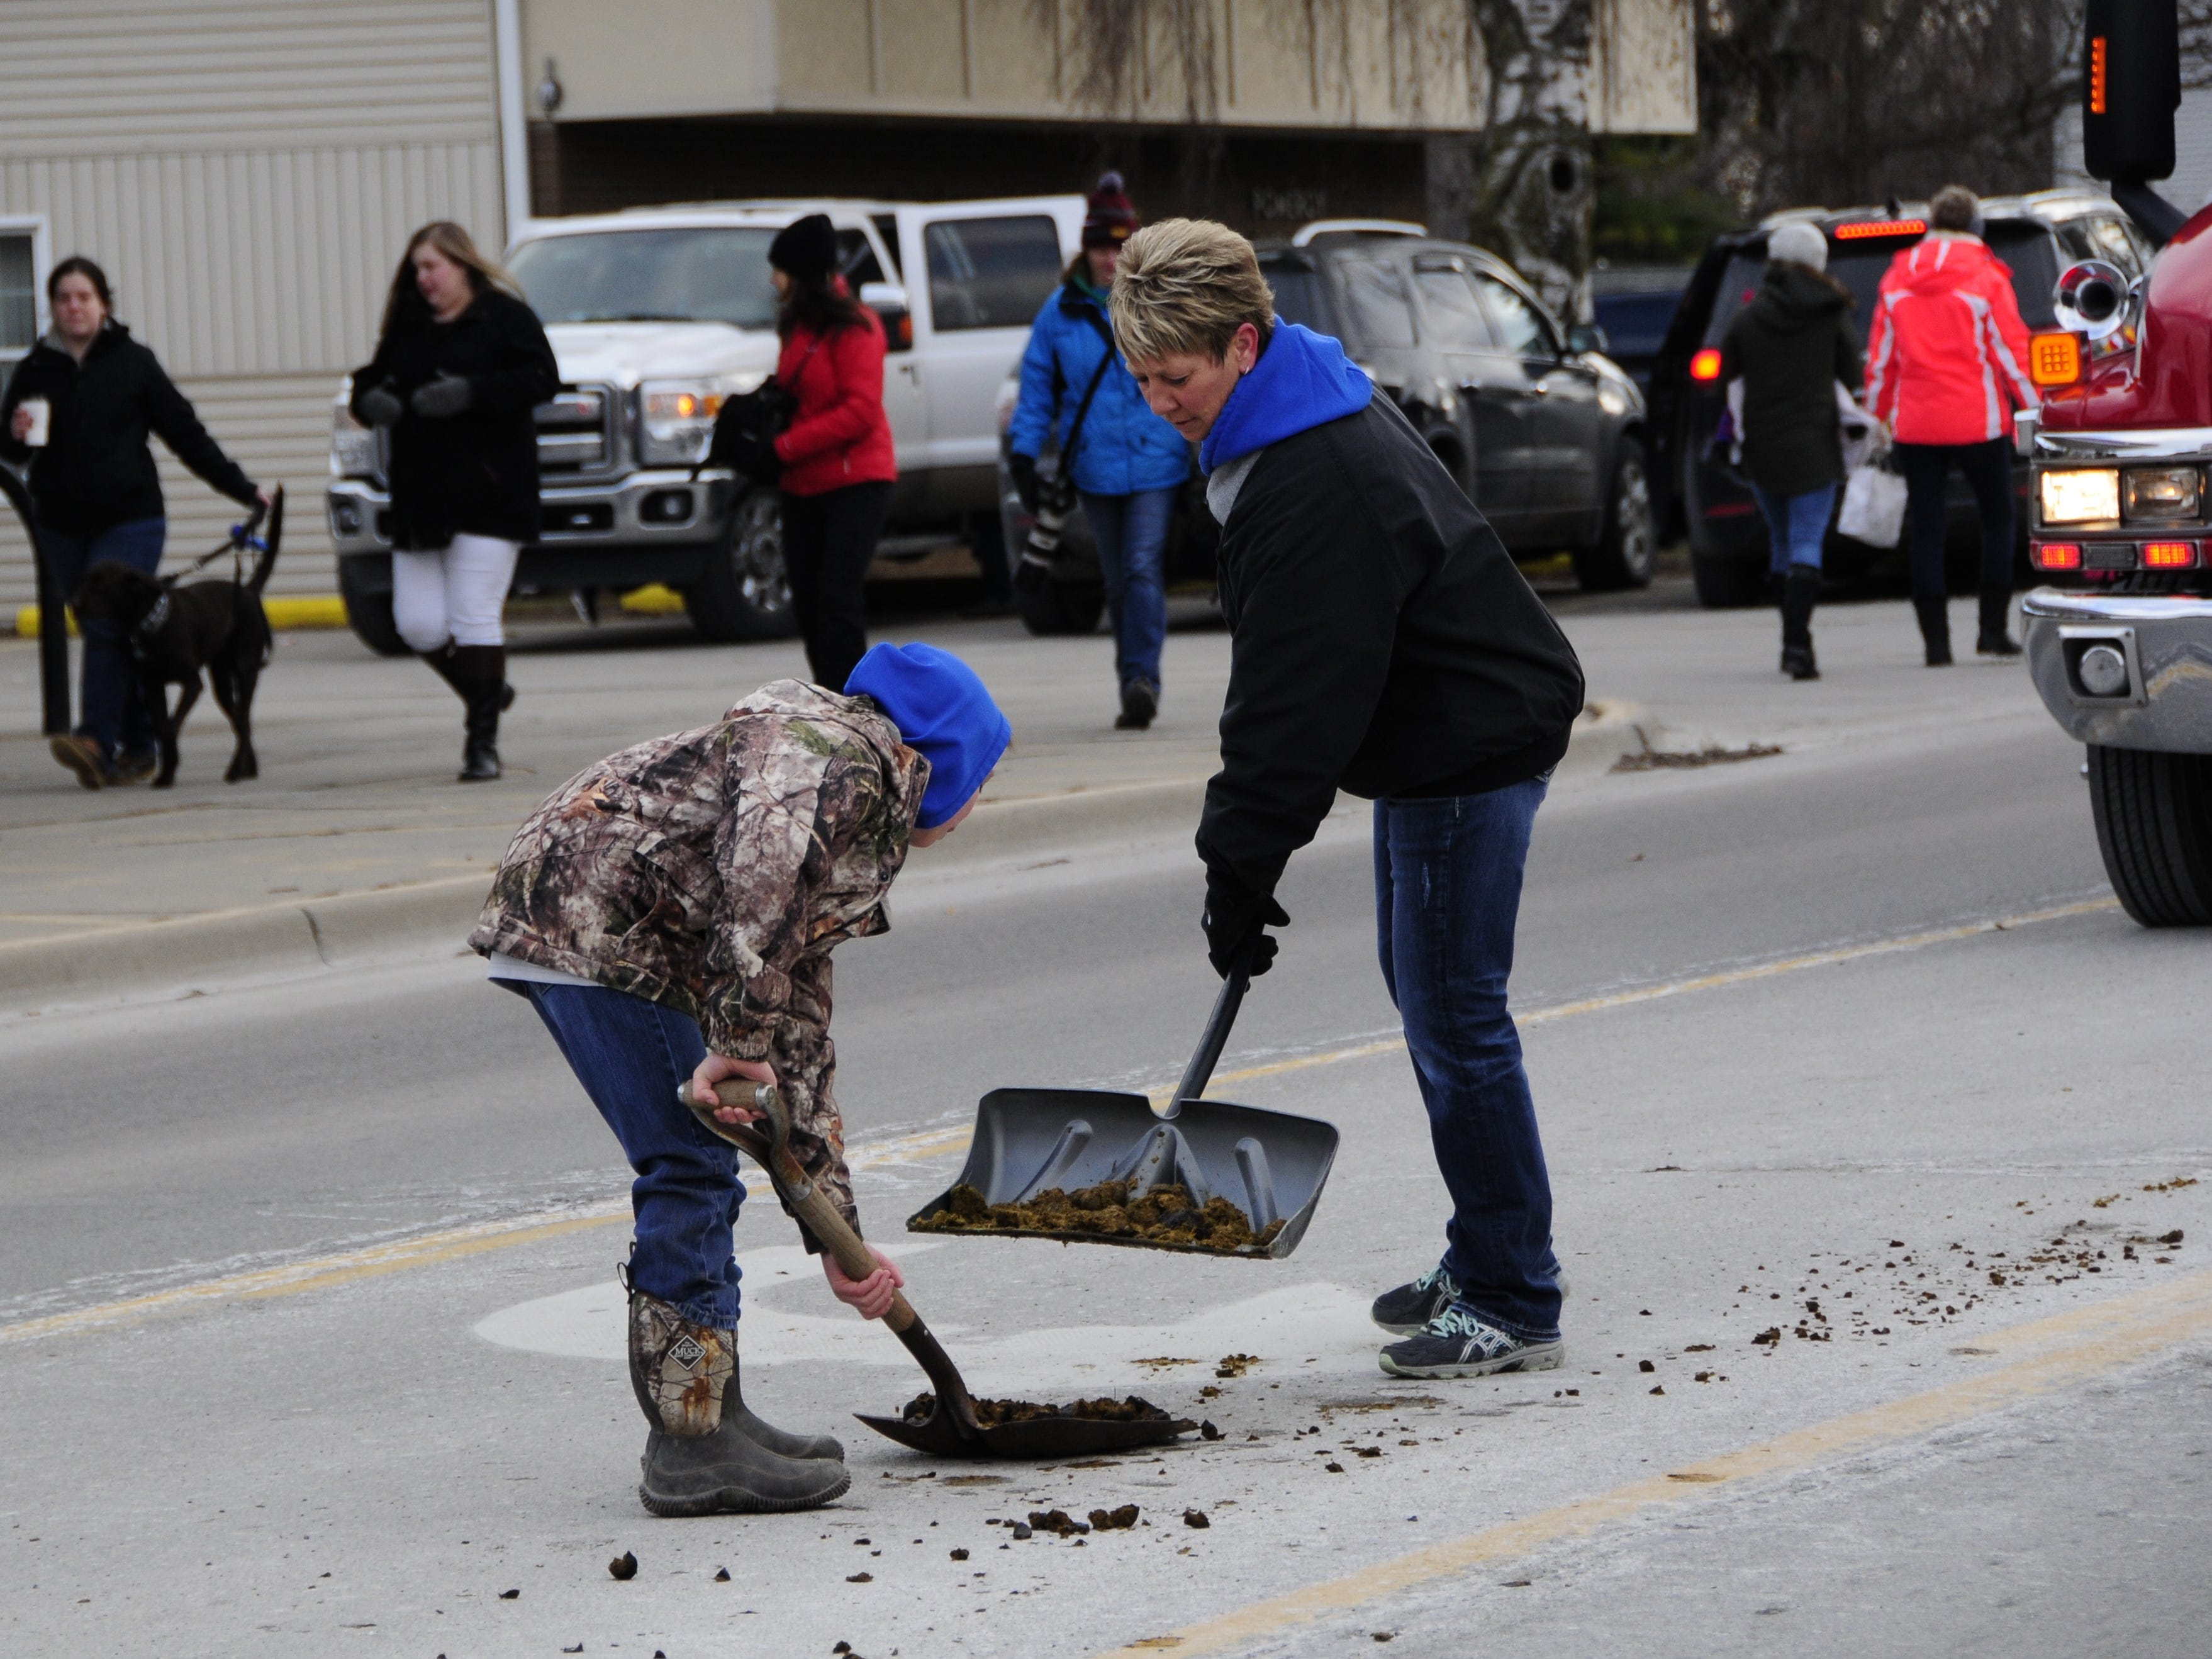 Lorie and Branden Soule clean up after the Lexington Old-Fashioned Christmas Horse Parade on Saturday, Dec. 8, 2018.